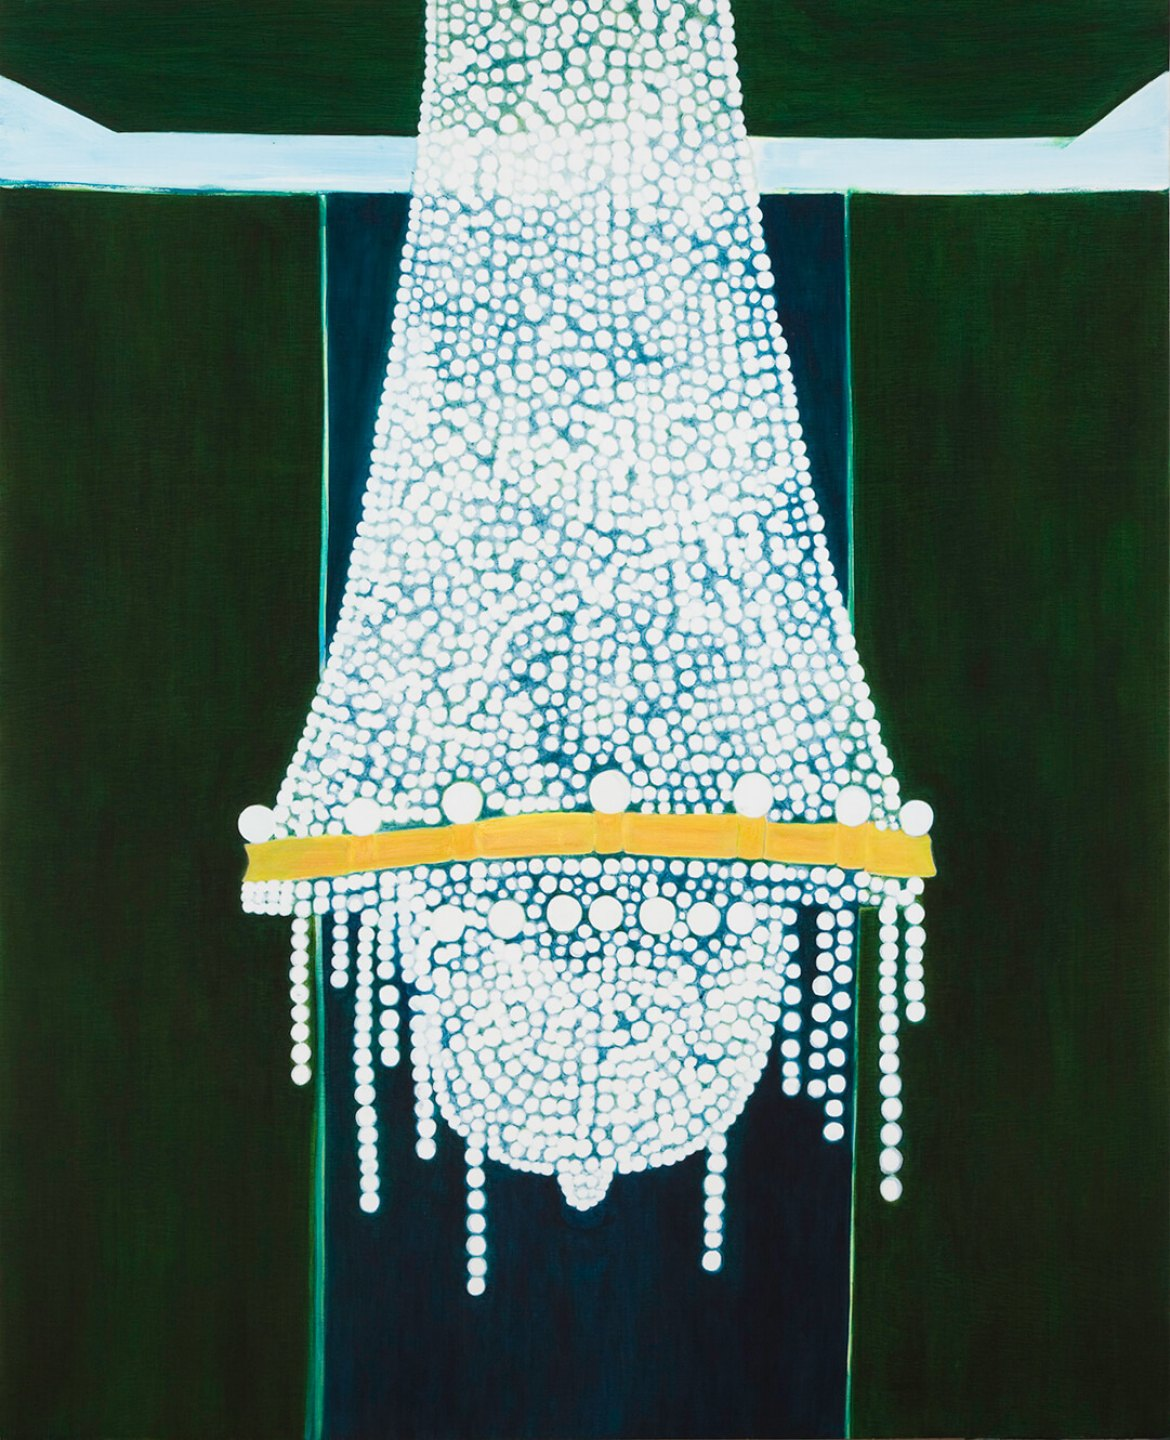 Patricia Leite, <em>Untitled (After Daises)</em>, 2011, oil on wood, 160 × 130 cm - Mendes Wood DM